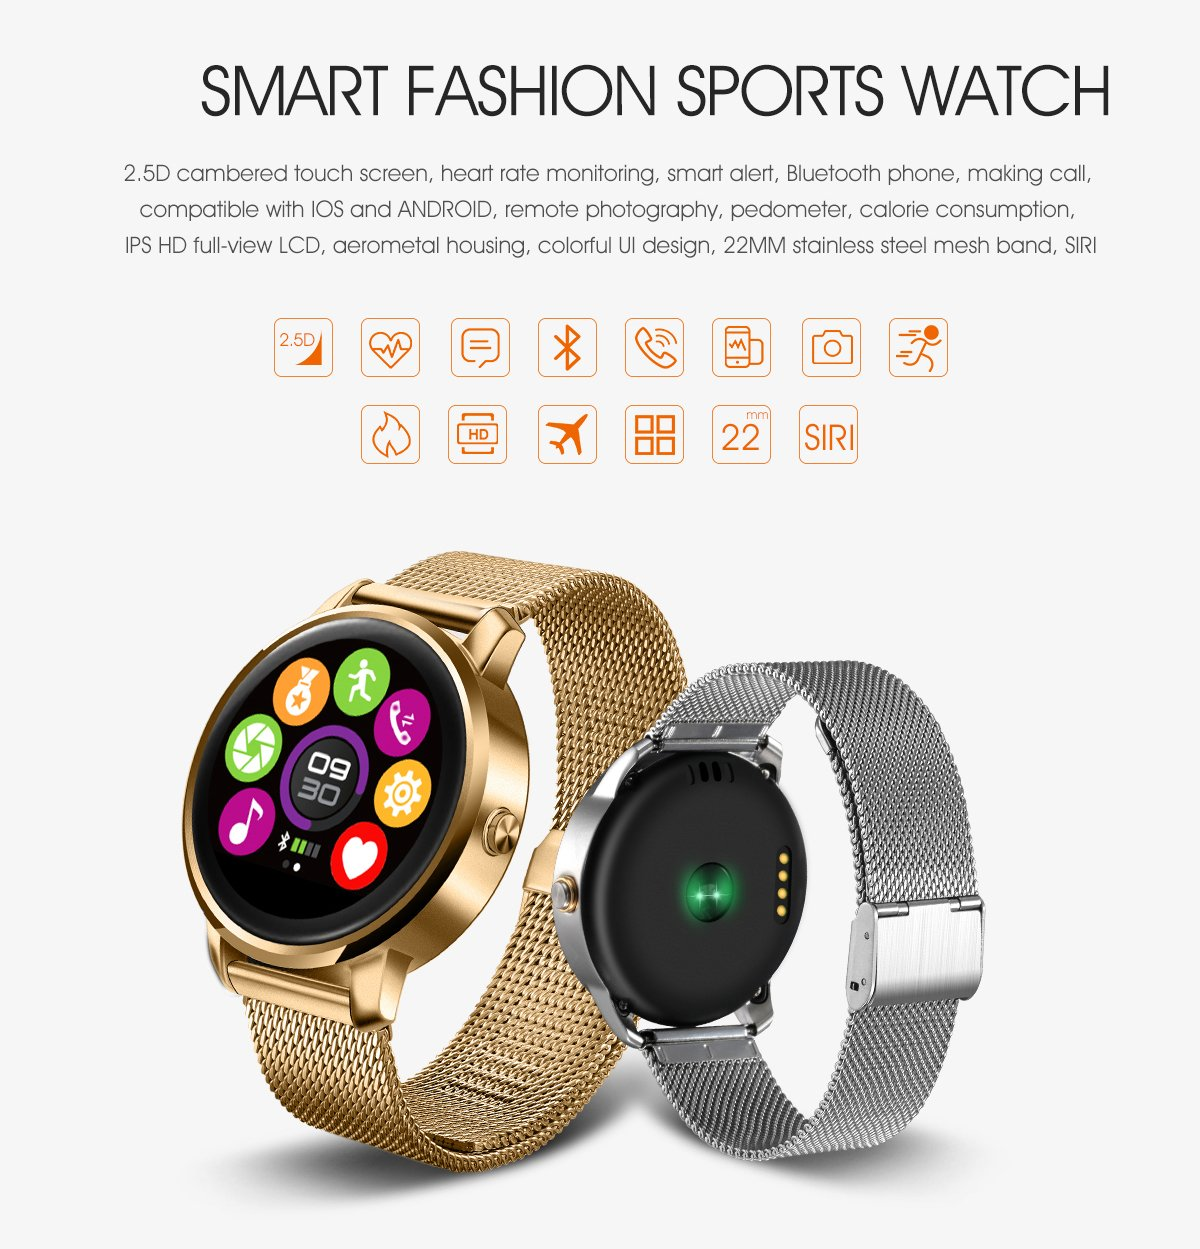 ... arrival Smart Watch Fitness Round Heart Rate monitor Bluetooth smartwatch reloj inteligente electronic wrist watches (Black): Cell Phones & Accessories